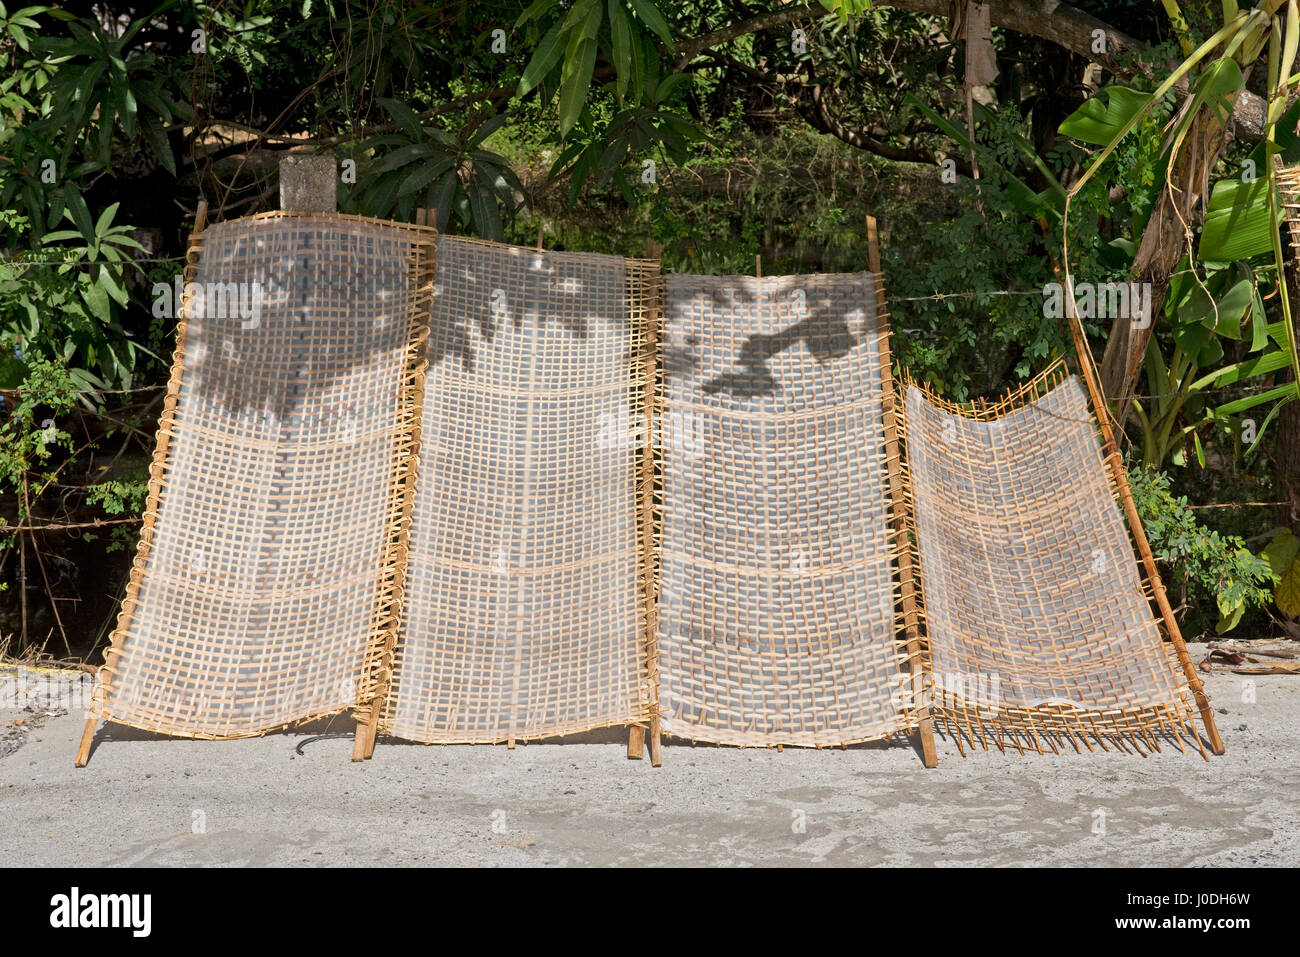 Horizontal view of traditional white rice noodles in sheet form drying out in the sunshine in Vietnam. - Stock Image